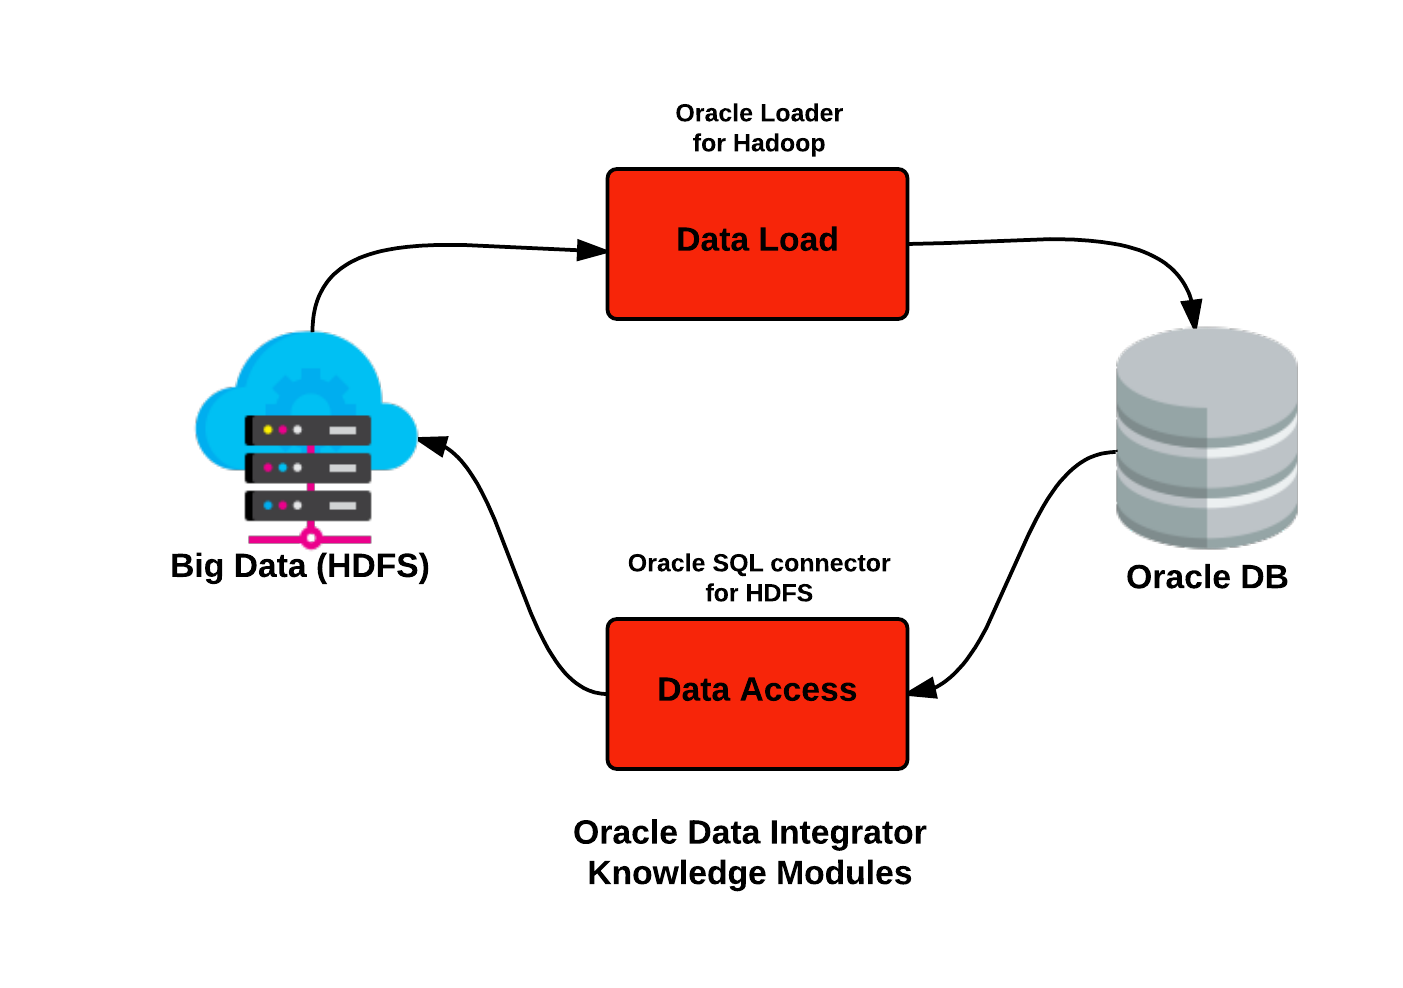 Native big data connectors data lake for enterprises book the figure below figure 09 shows the full suite of oracle big data connector products and what they do details taken from oracle baditri Gallery